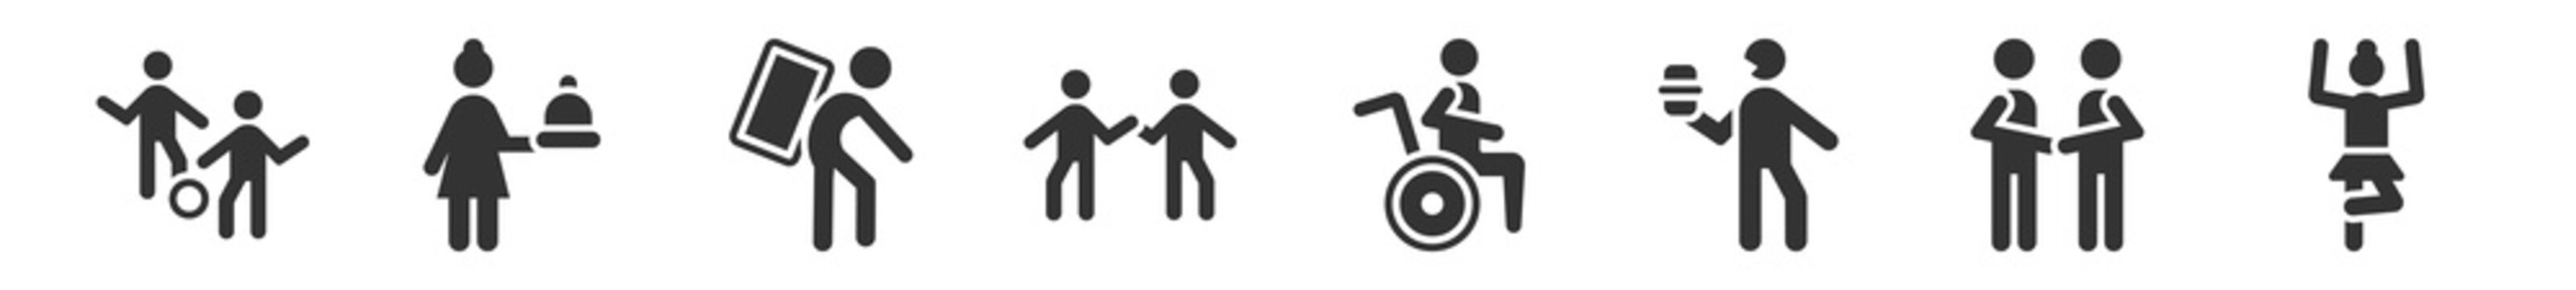 filled set of humans icons. glyph vector icons such as playing with a ball, woman cooking, carrying on back, high five, wheel chair, gymnastics. vector illustration.